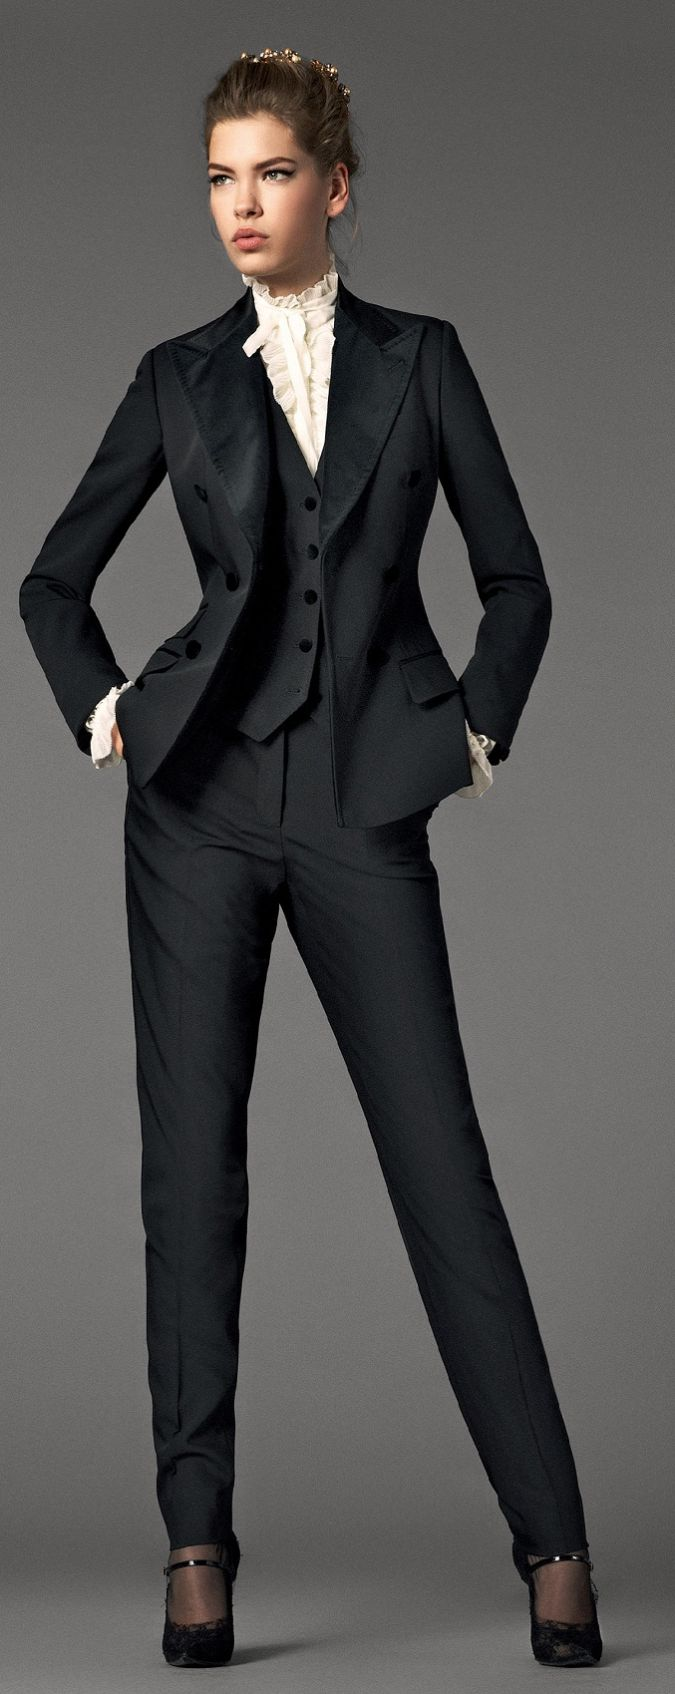 Dolce  Gabbana , I am totally loving the dressing like a man look, its totally sexy w/ the ruffles and heelsa, wonder if my husband will like this look as much as I do this year, Totally think I can pull this off...hmmm we shall c